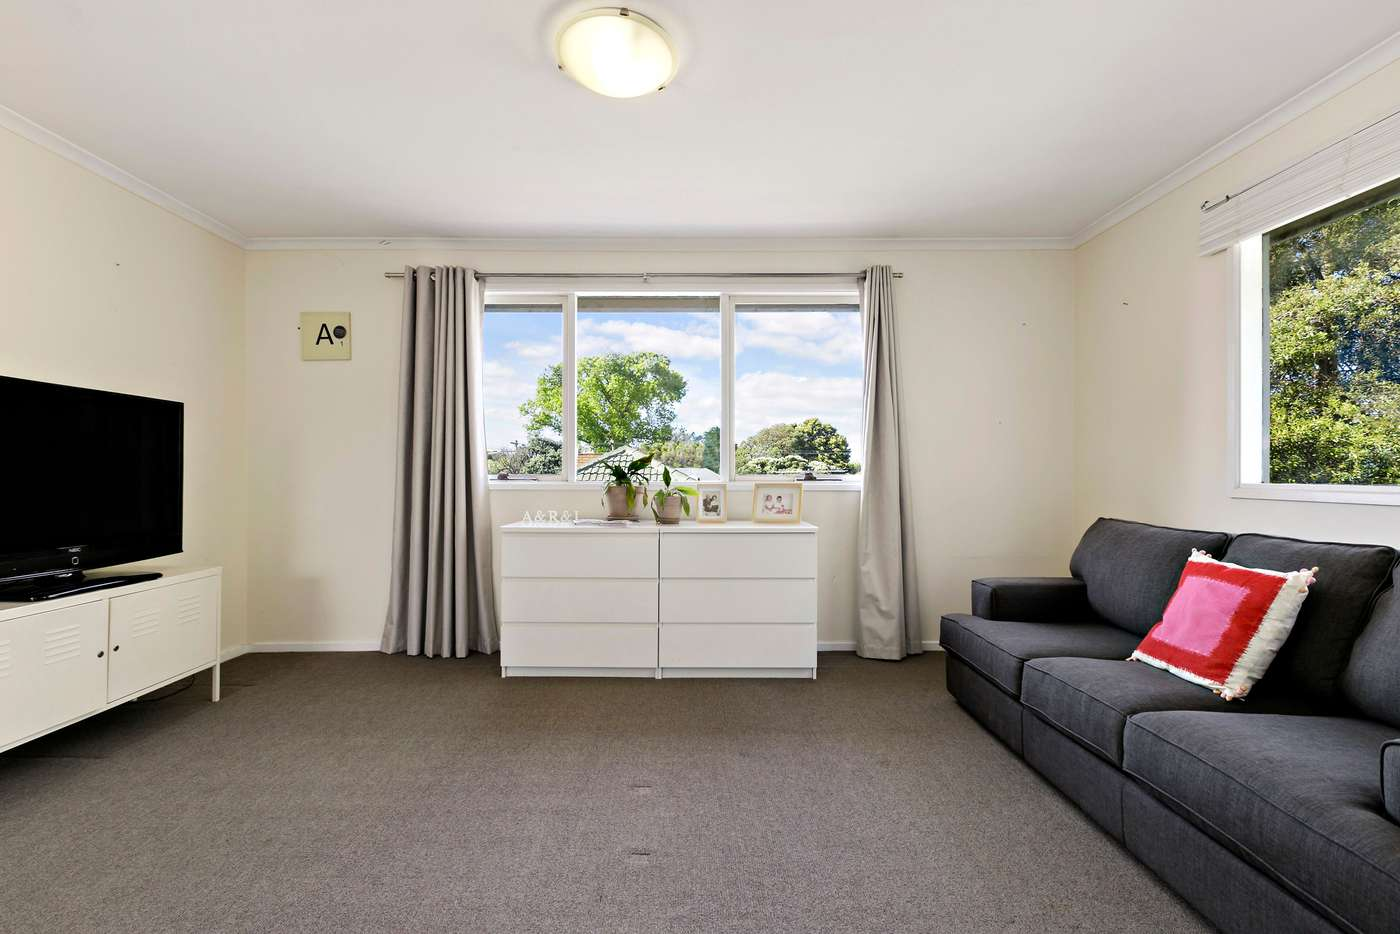 Fifth view of Homely house listing, 4 Geofrey Street, Frankston VIC 3199